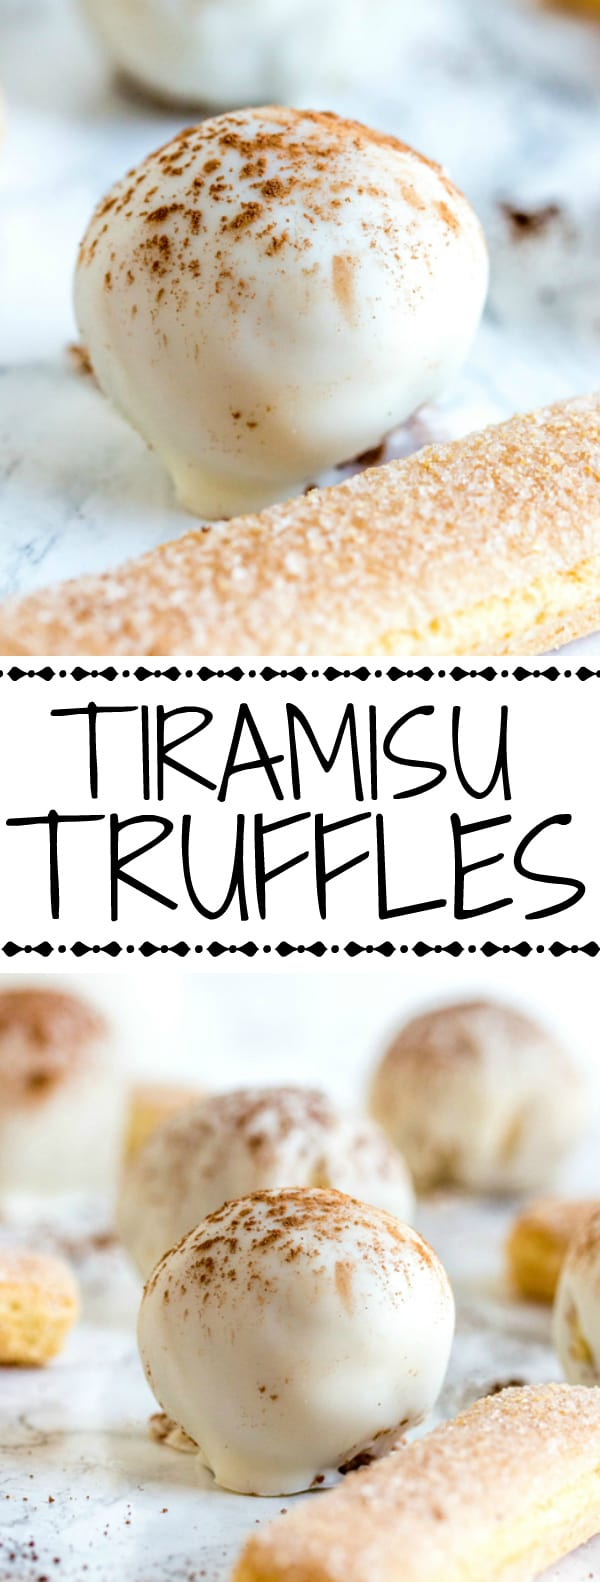 Tiramisu Truffle collage with words in middle